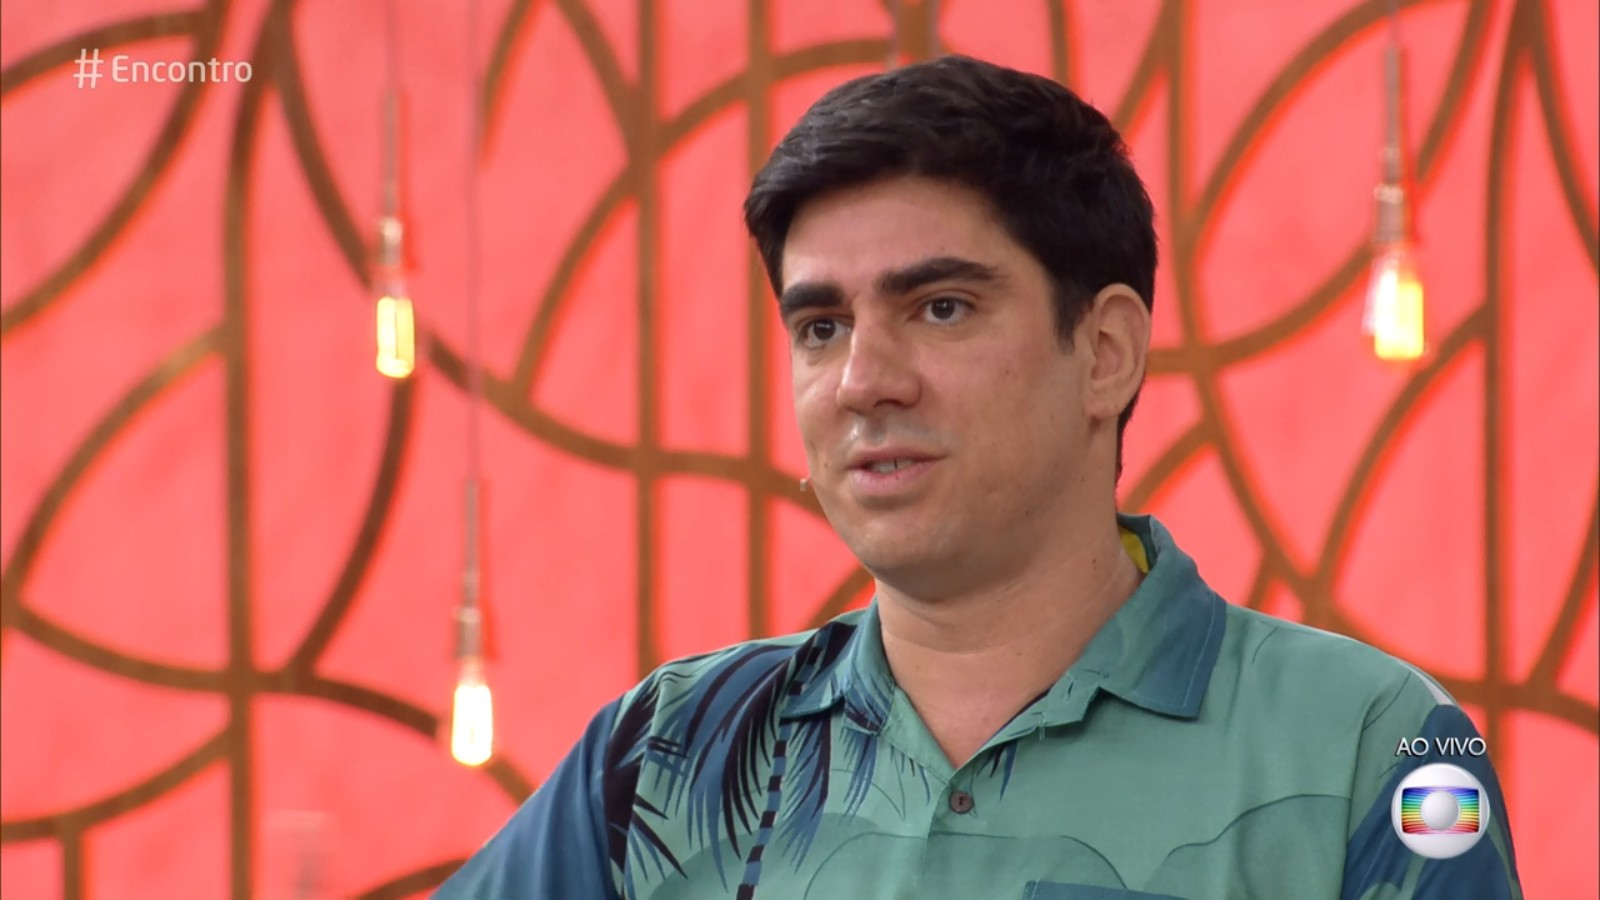 marcelo adnet abuso sexual